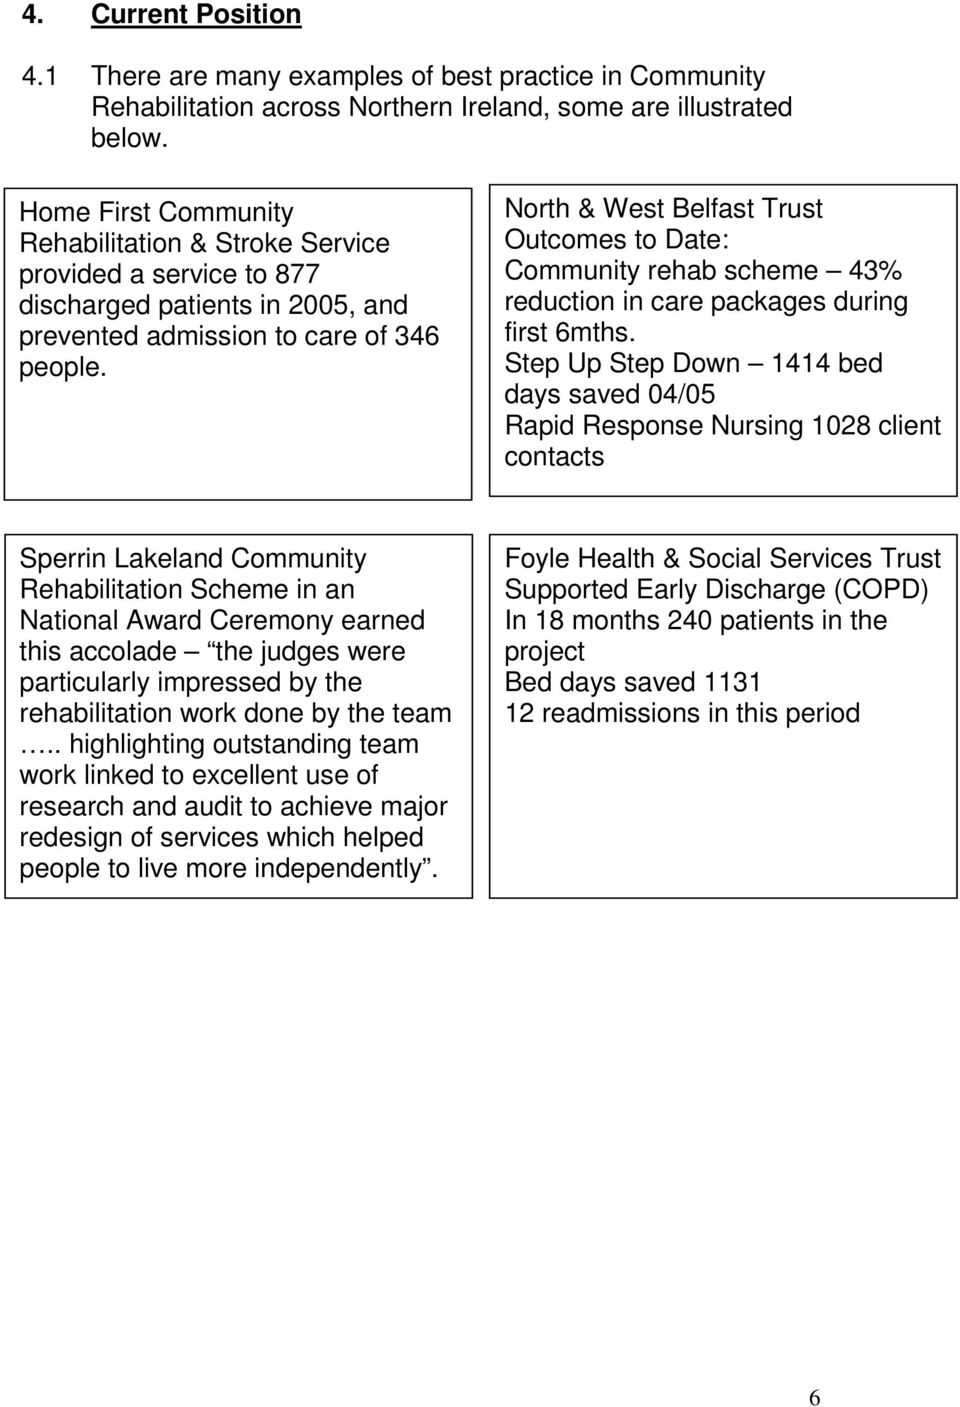 North & West Belfast Trust Outcomes to Date: Community rehab scheme 43% reduction in care packages during first 6mths.